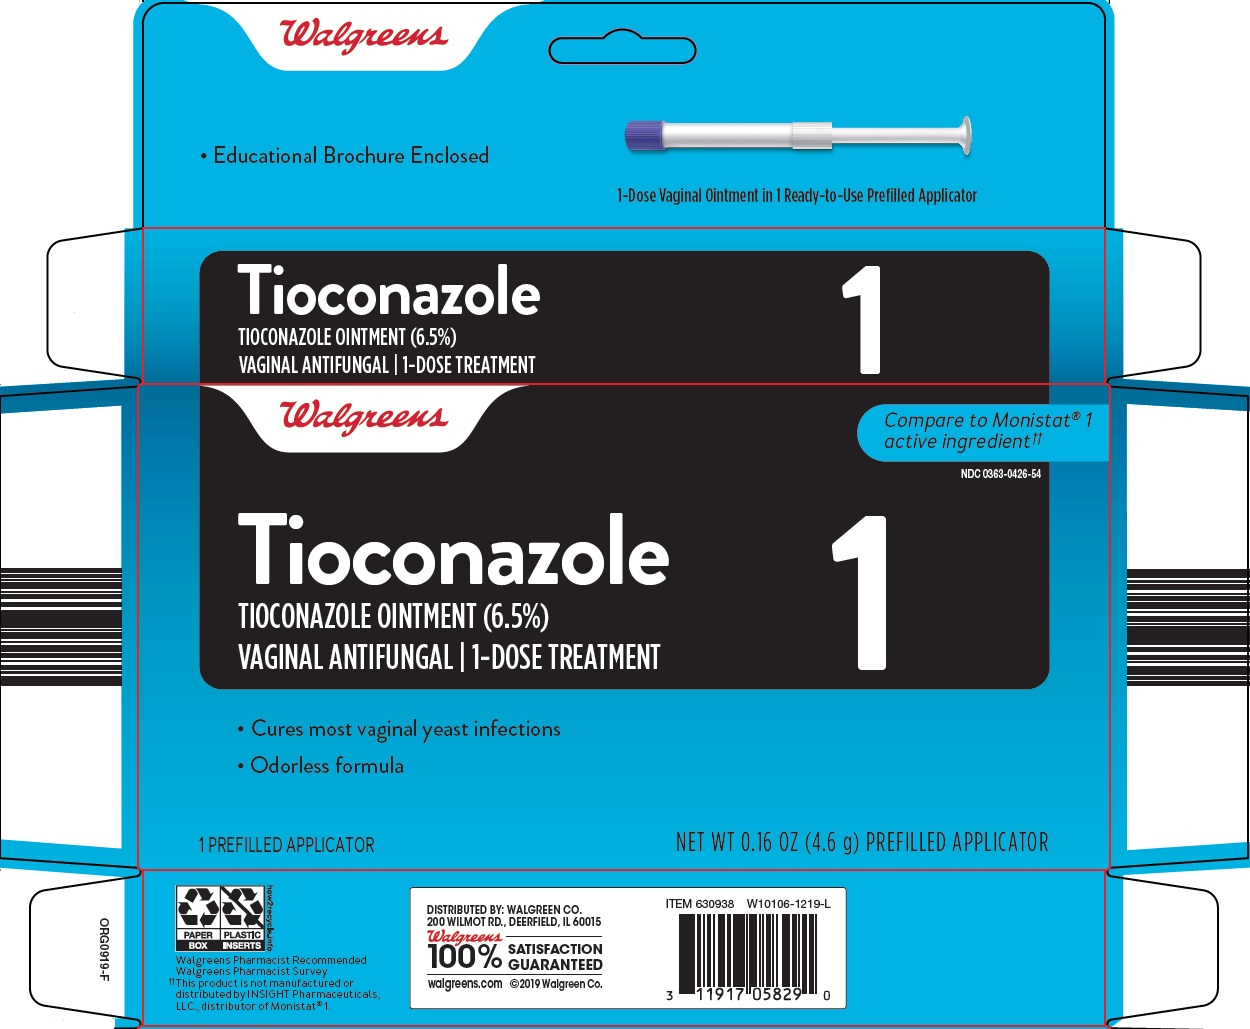 Walgreens Tioconazole 1 day pill for yeast infection